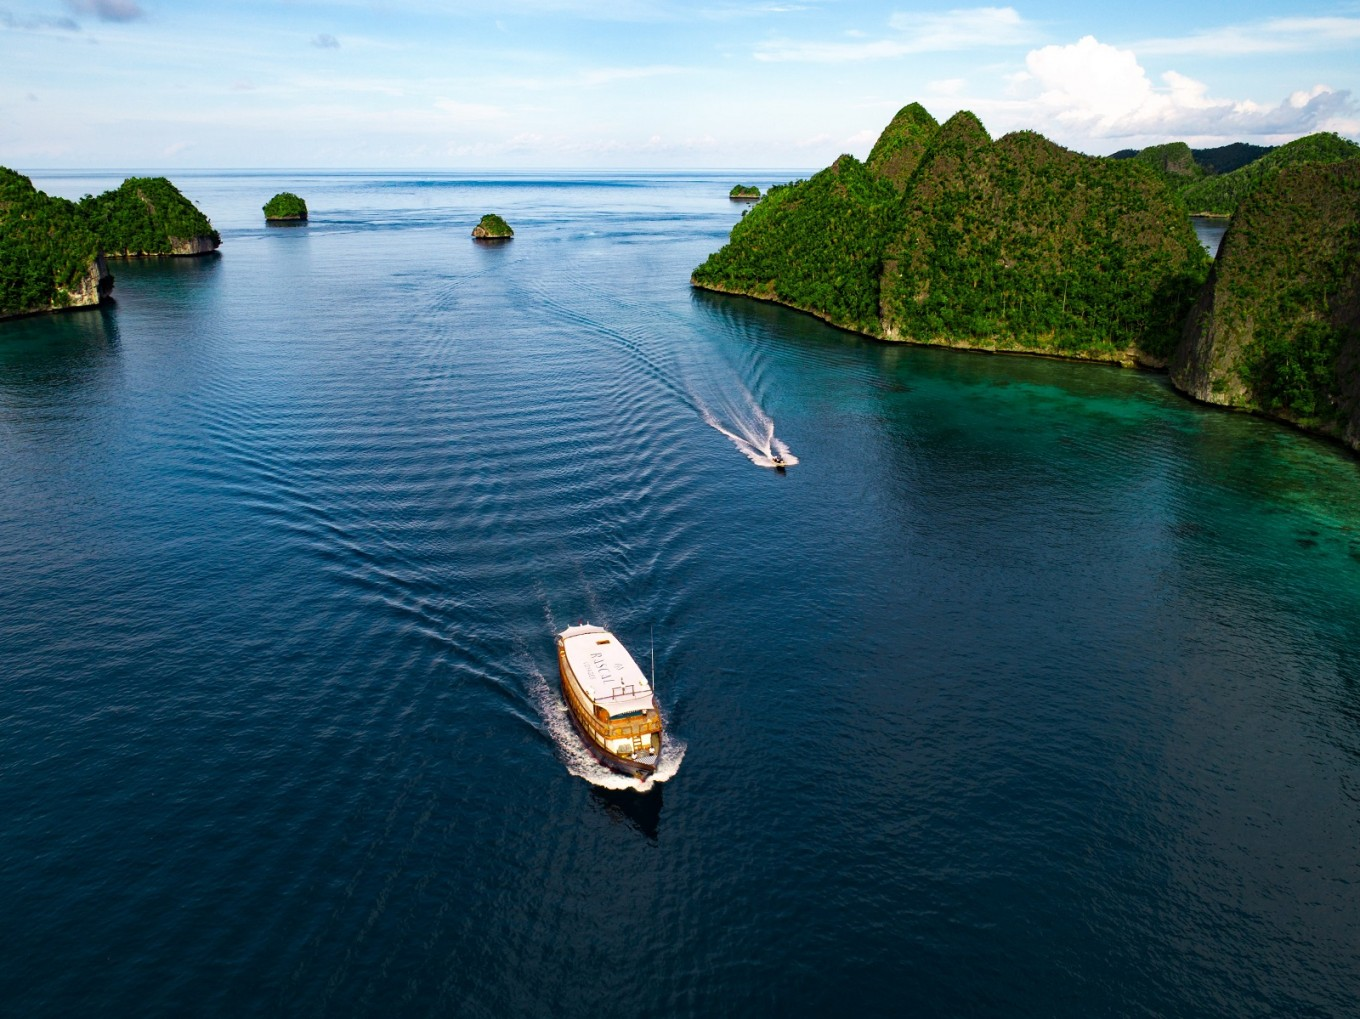 Rascal Voyages, CI Indonesia announce new luxury cruise-style exploration series